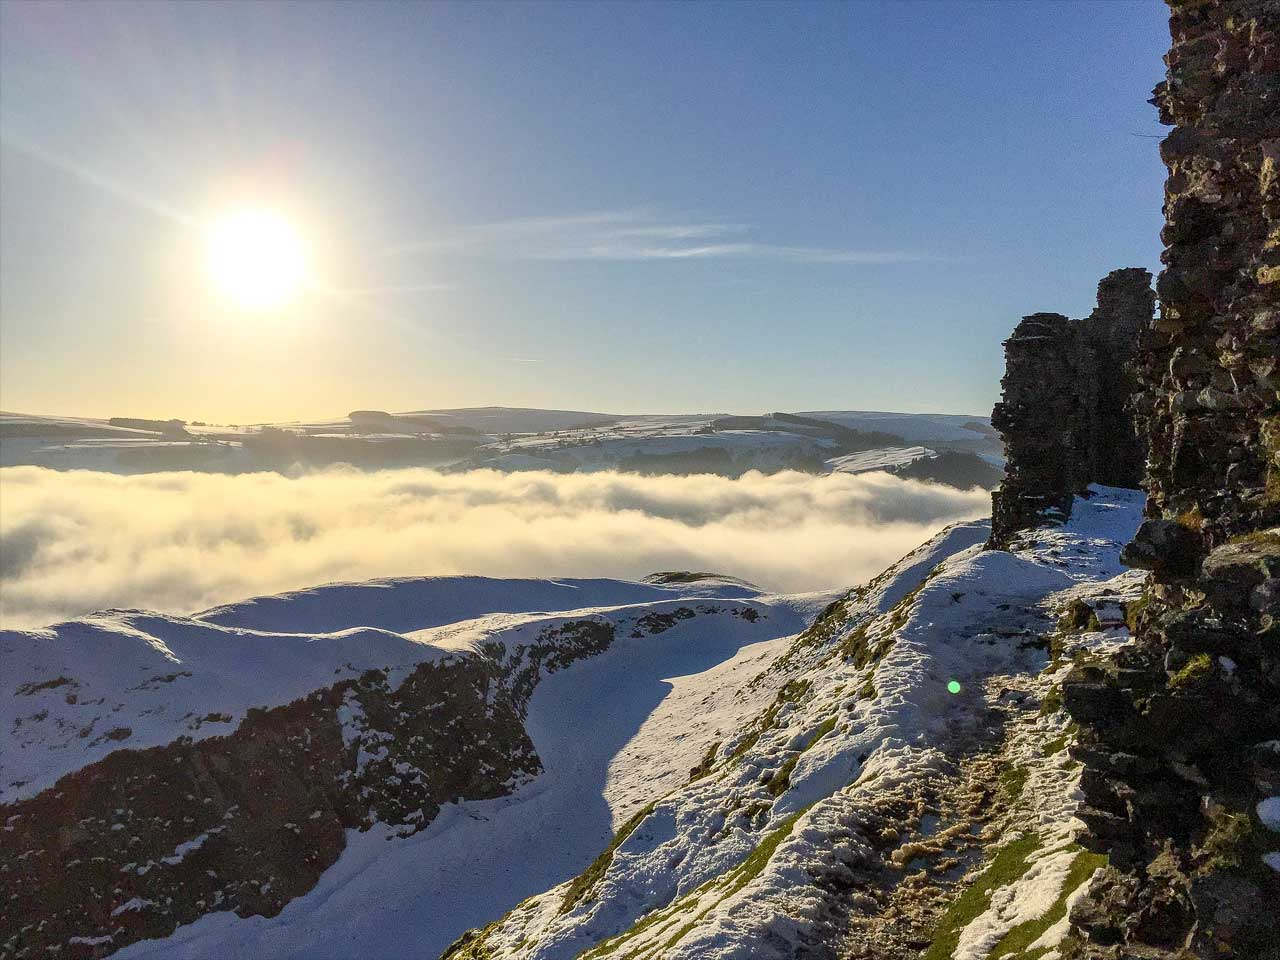 Image of Castell Dinas Bran taken with an iPhone